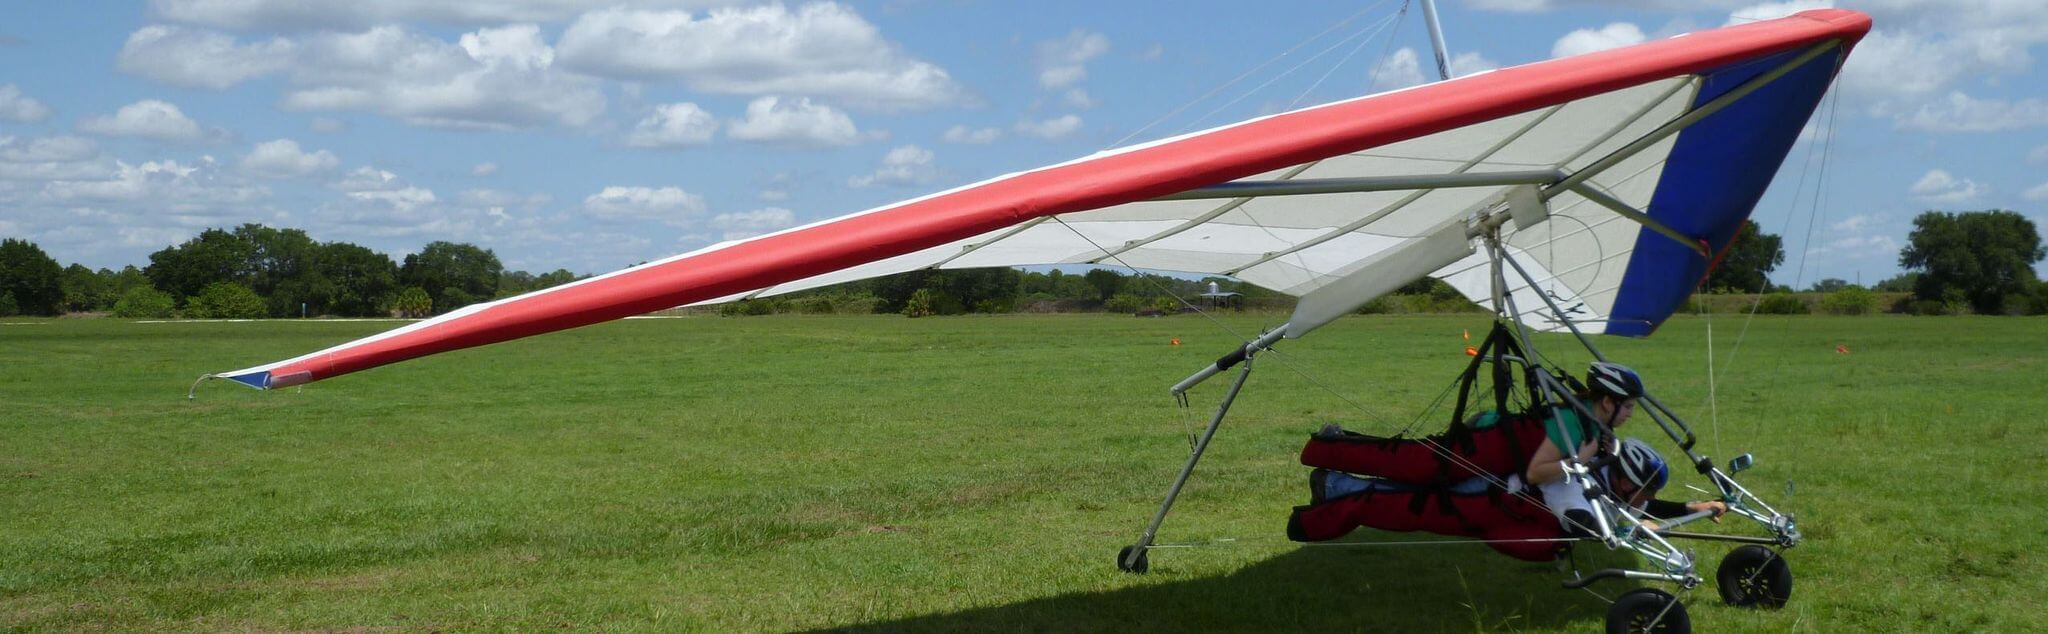 Hang Gliding in País Vasco